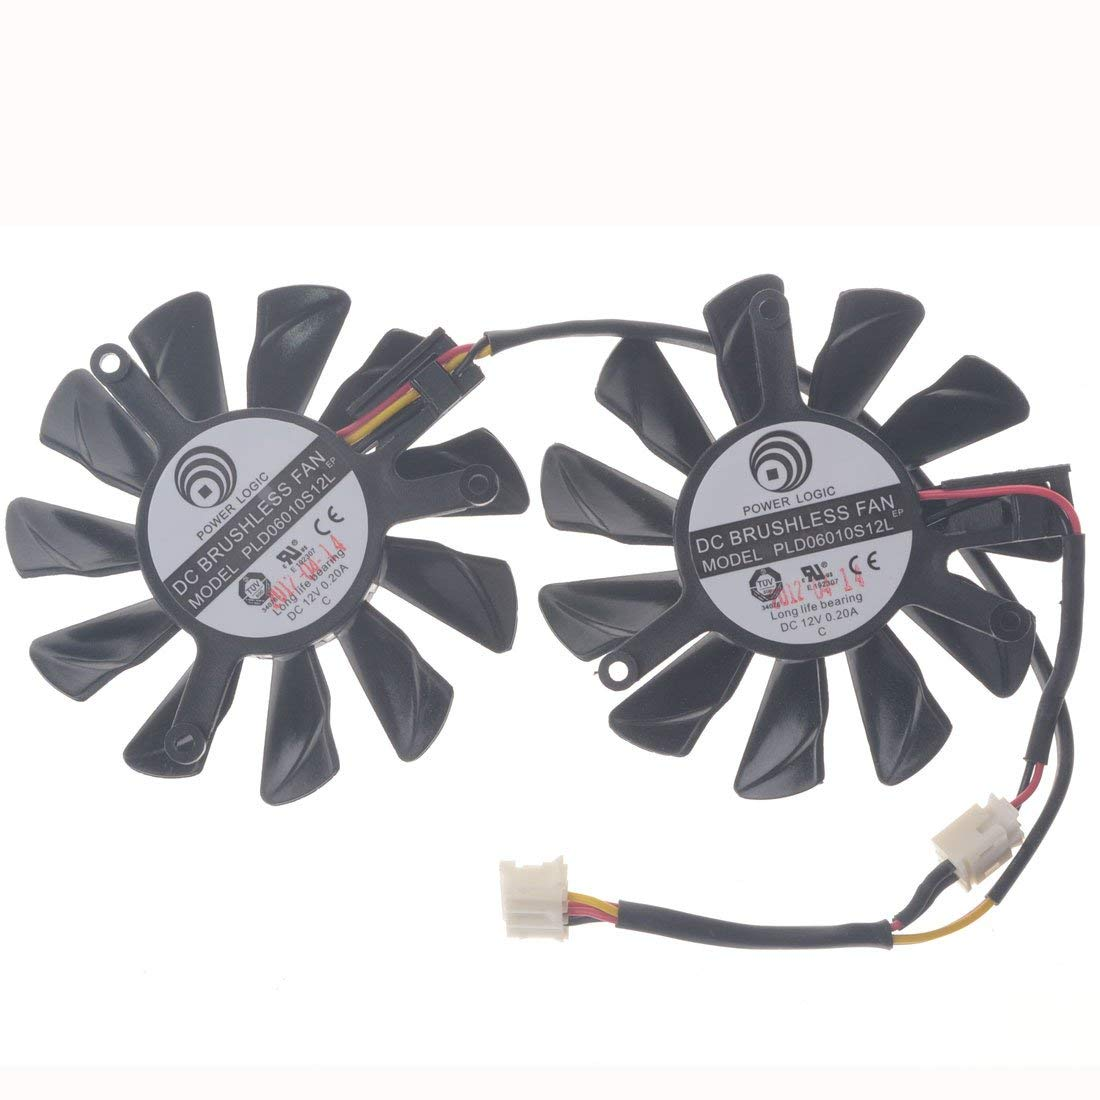 PLD06010S12L 12V 0.2A 55mm 4 Pin Replacement Video Card Cooling Fan Graphics Card Fan